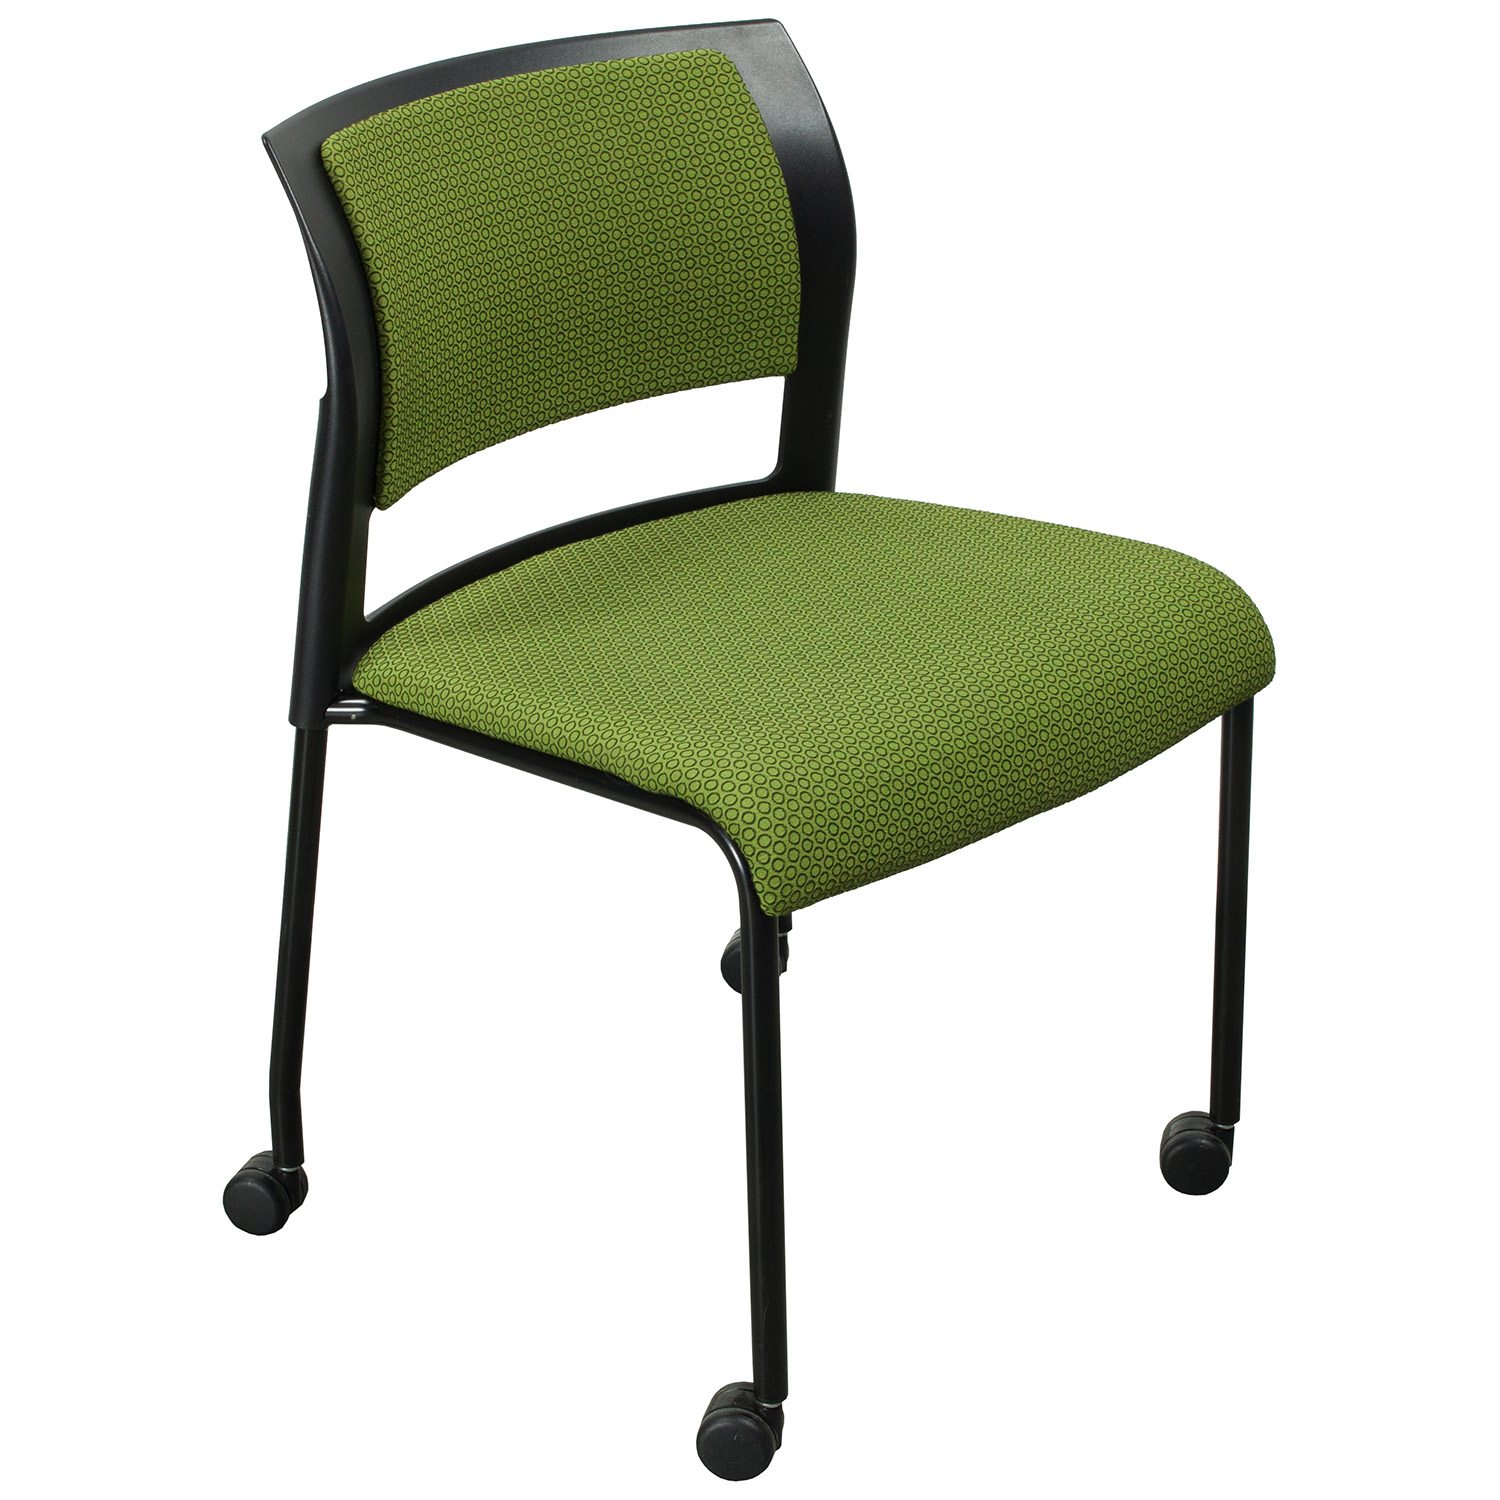 Moving Chair Steelcase Move Used Mobile Chair Green National Office